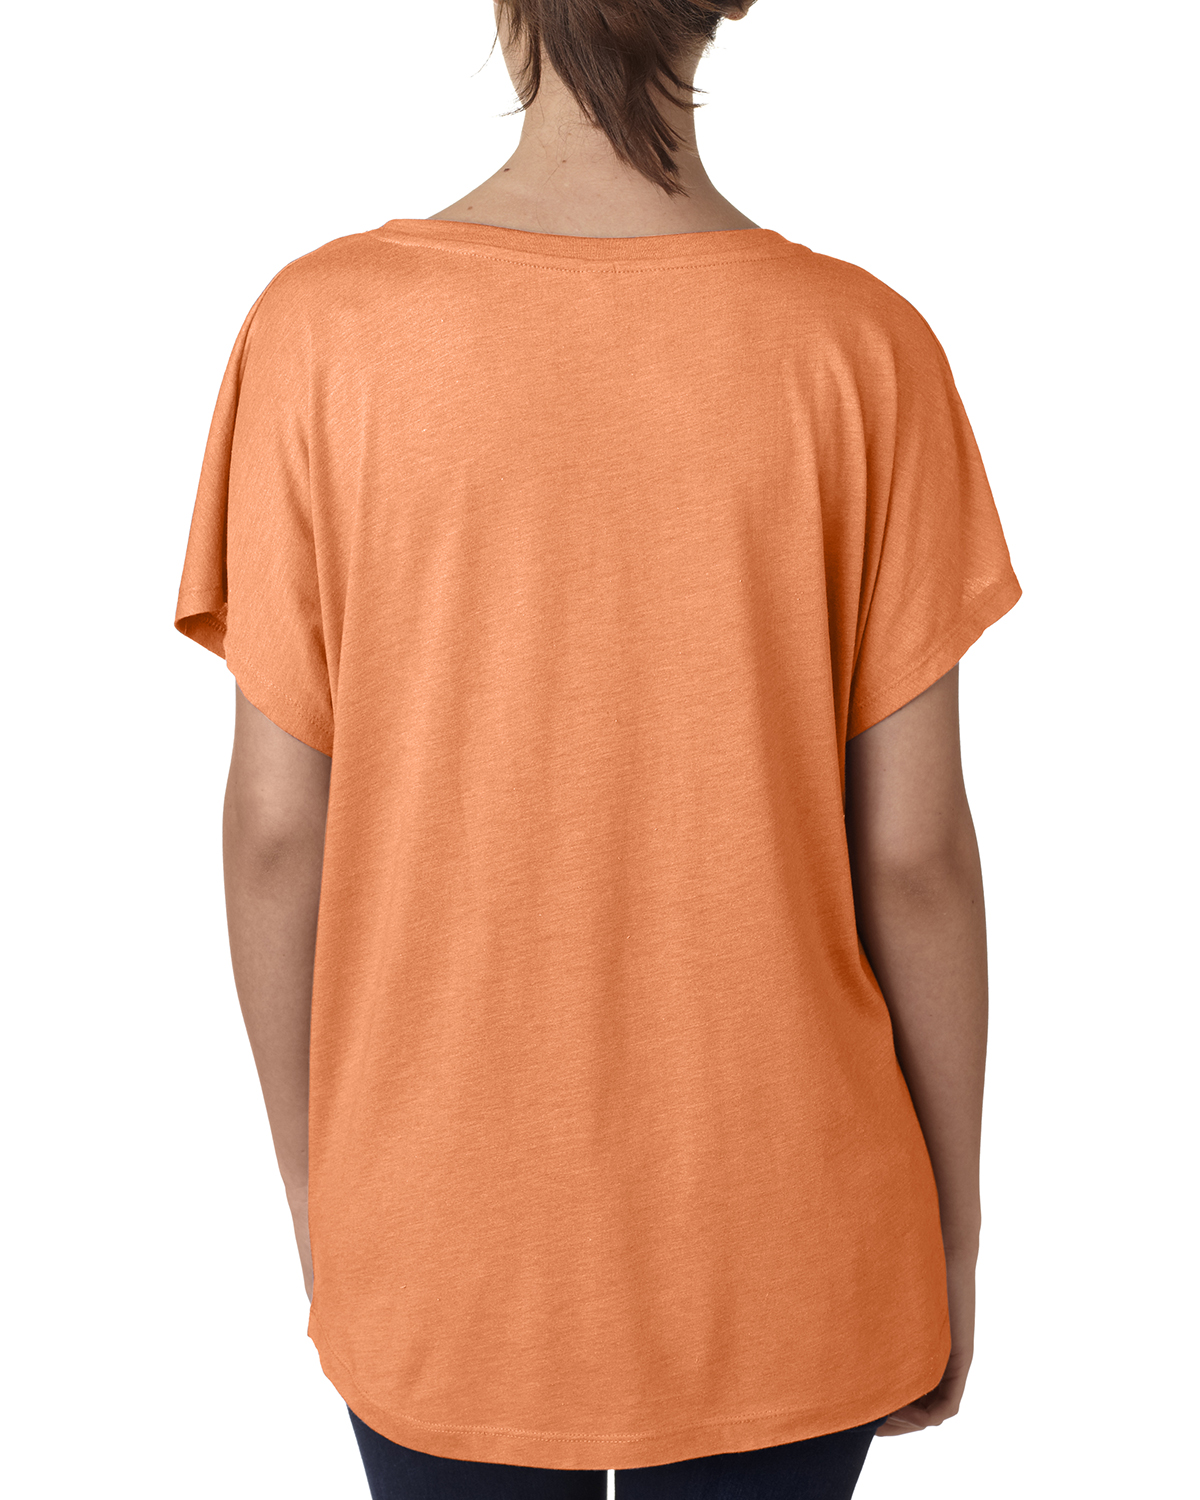 NEW-Next-Level-Junior-Fit-Triblend-Dolman-Sleeve-Relexed-Fit-T-Shirt-B-6760 thumbnail 24